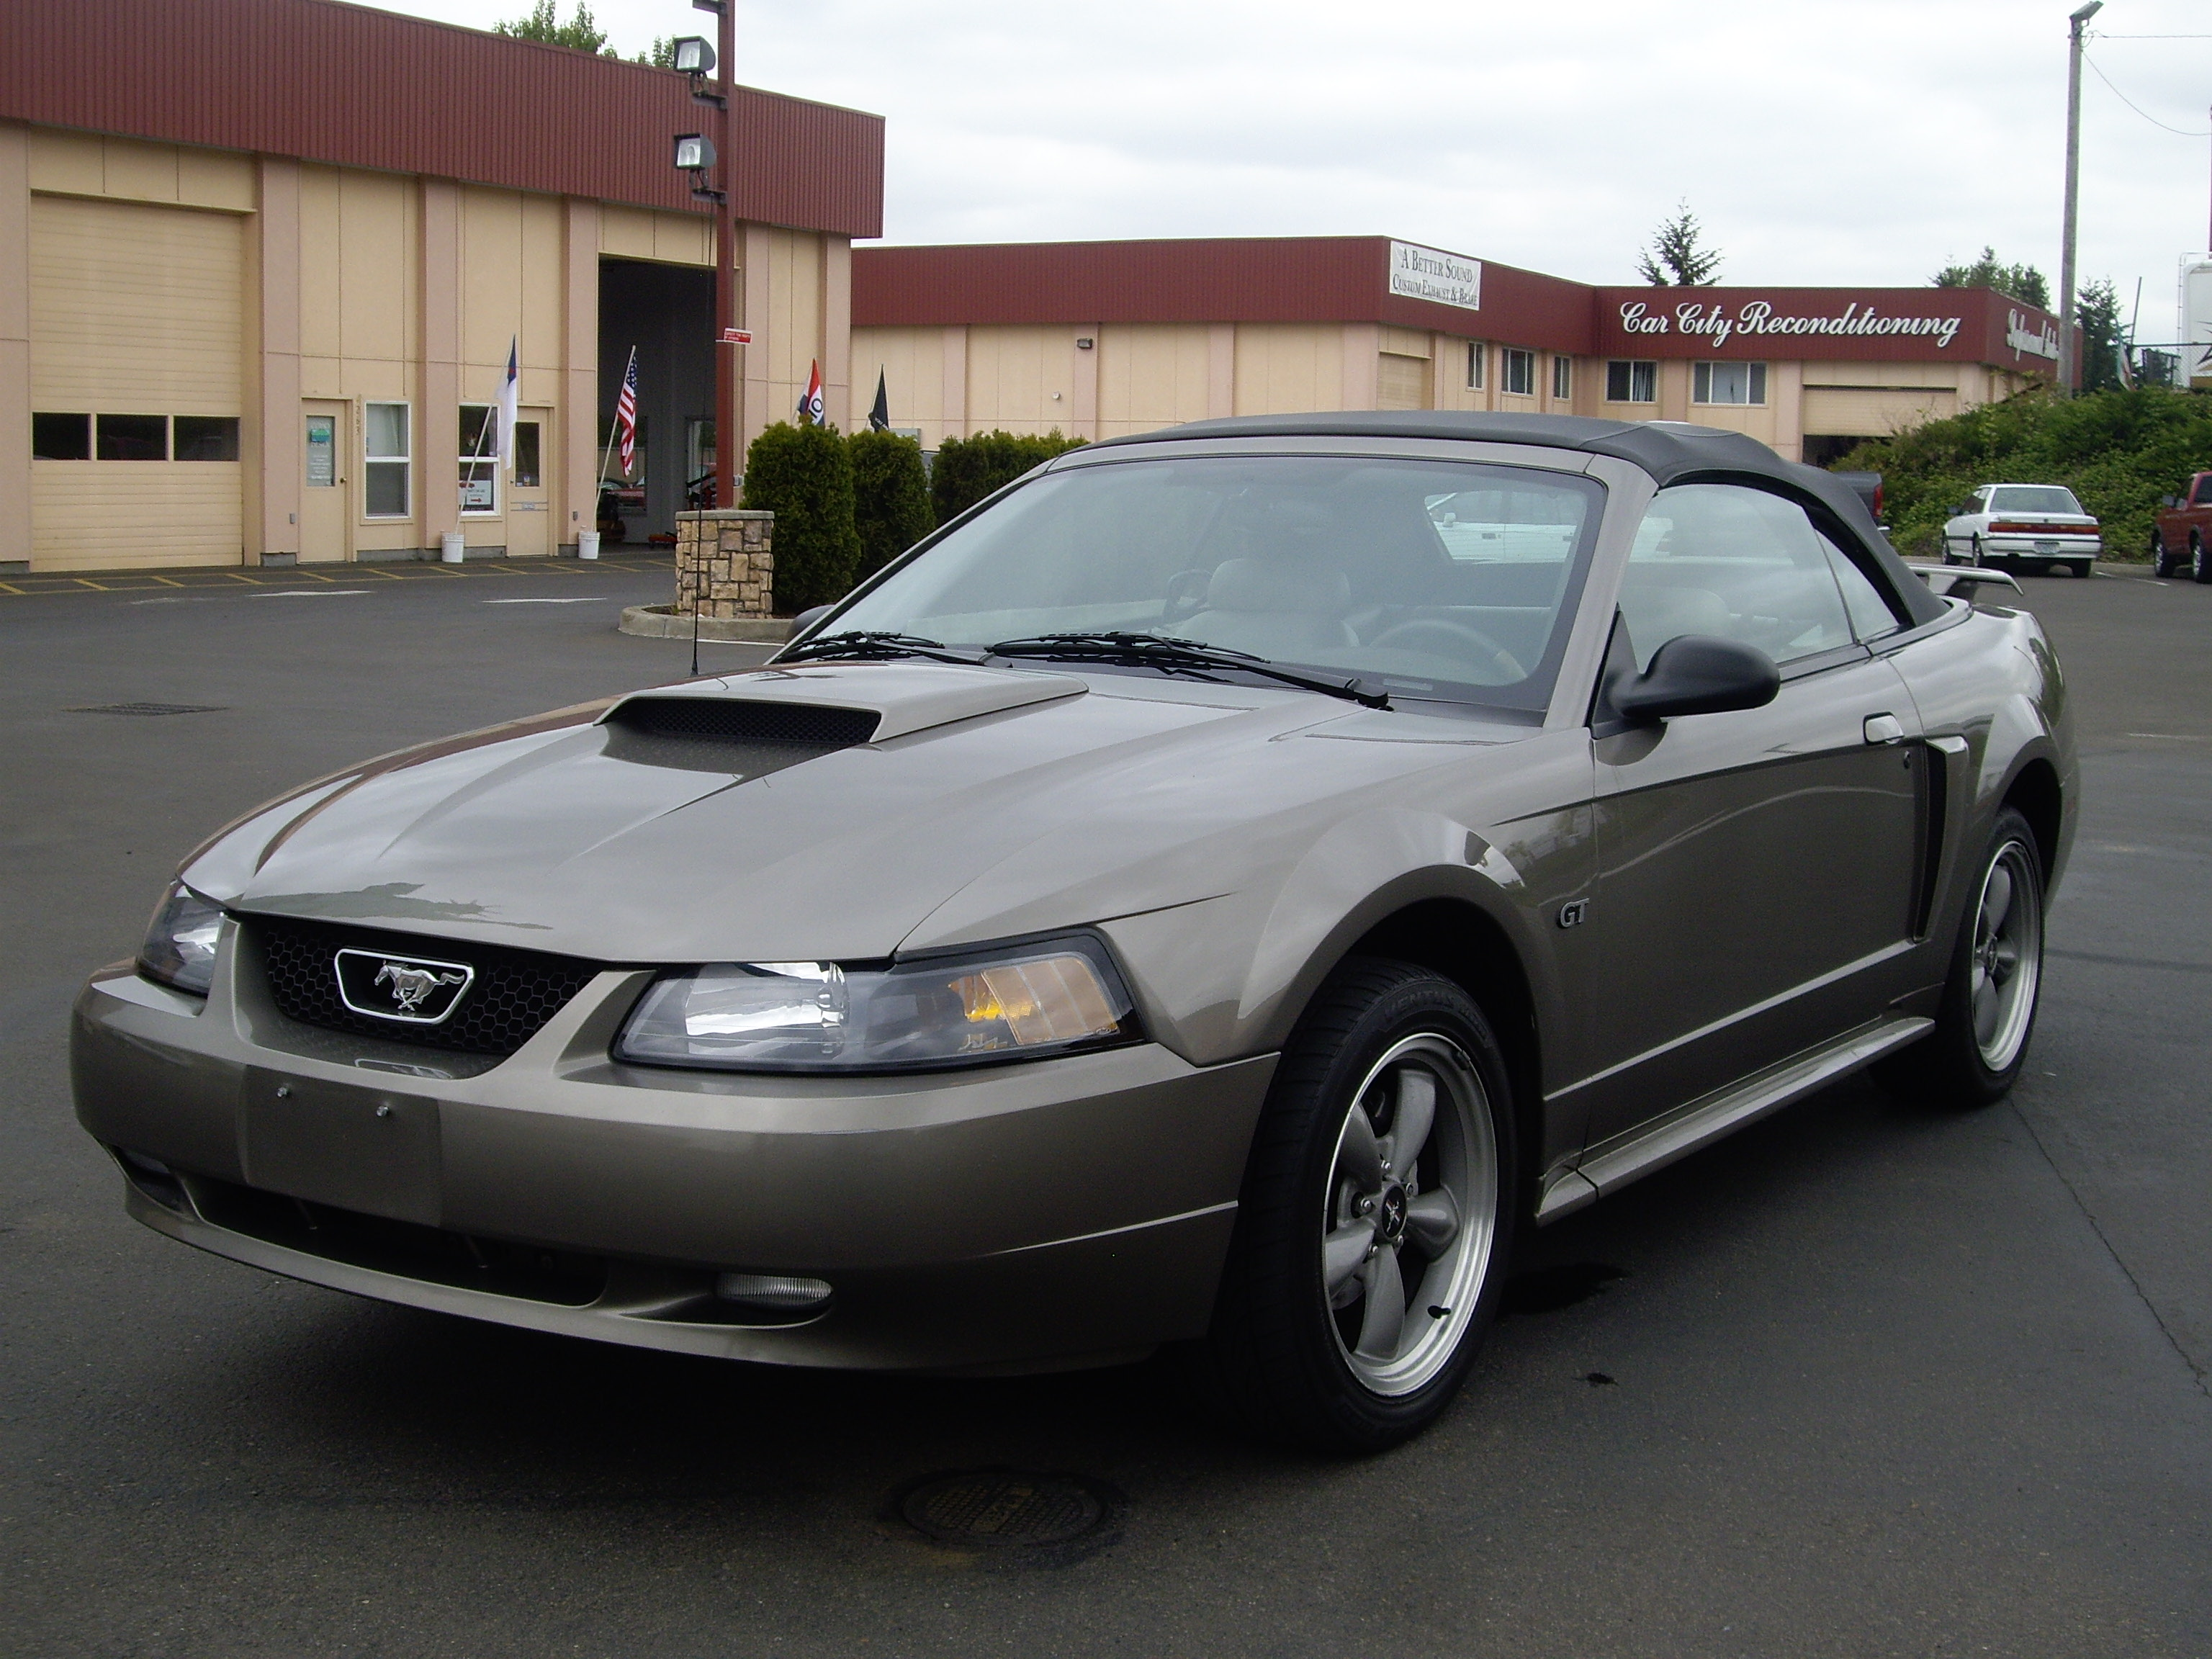 2002 Ford Mustang #11